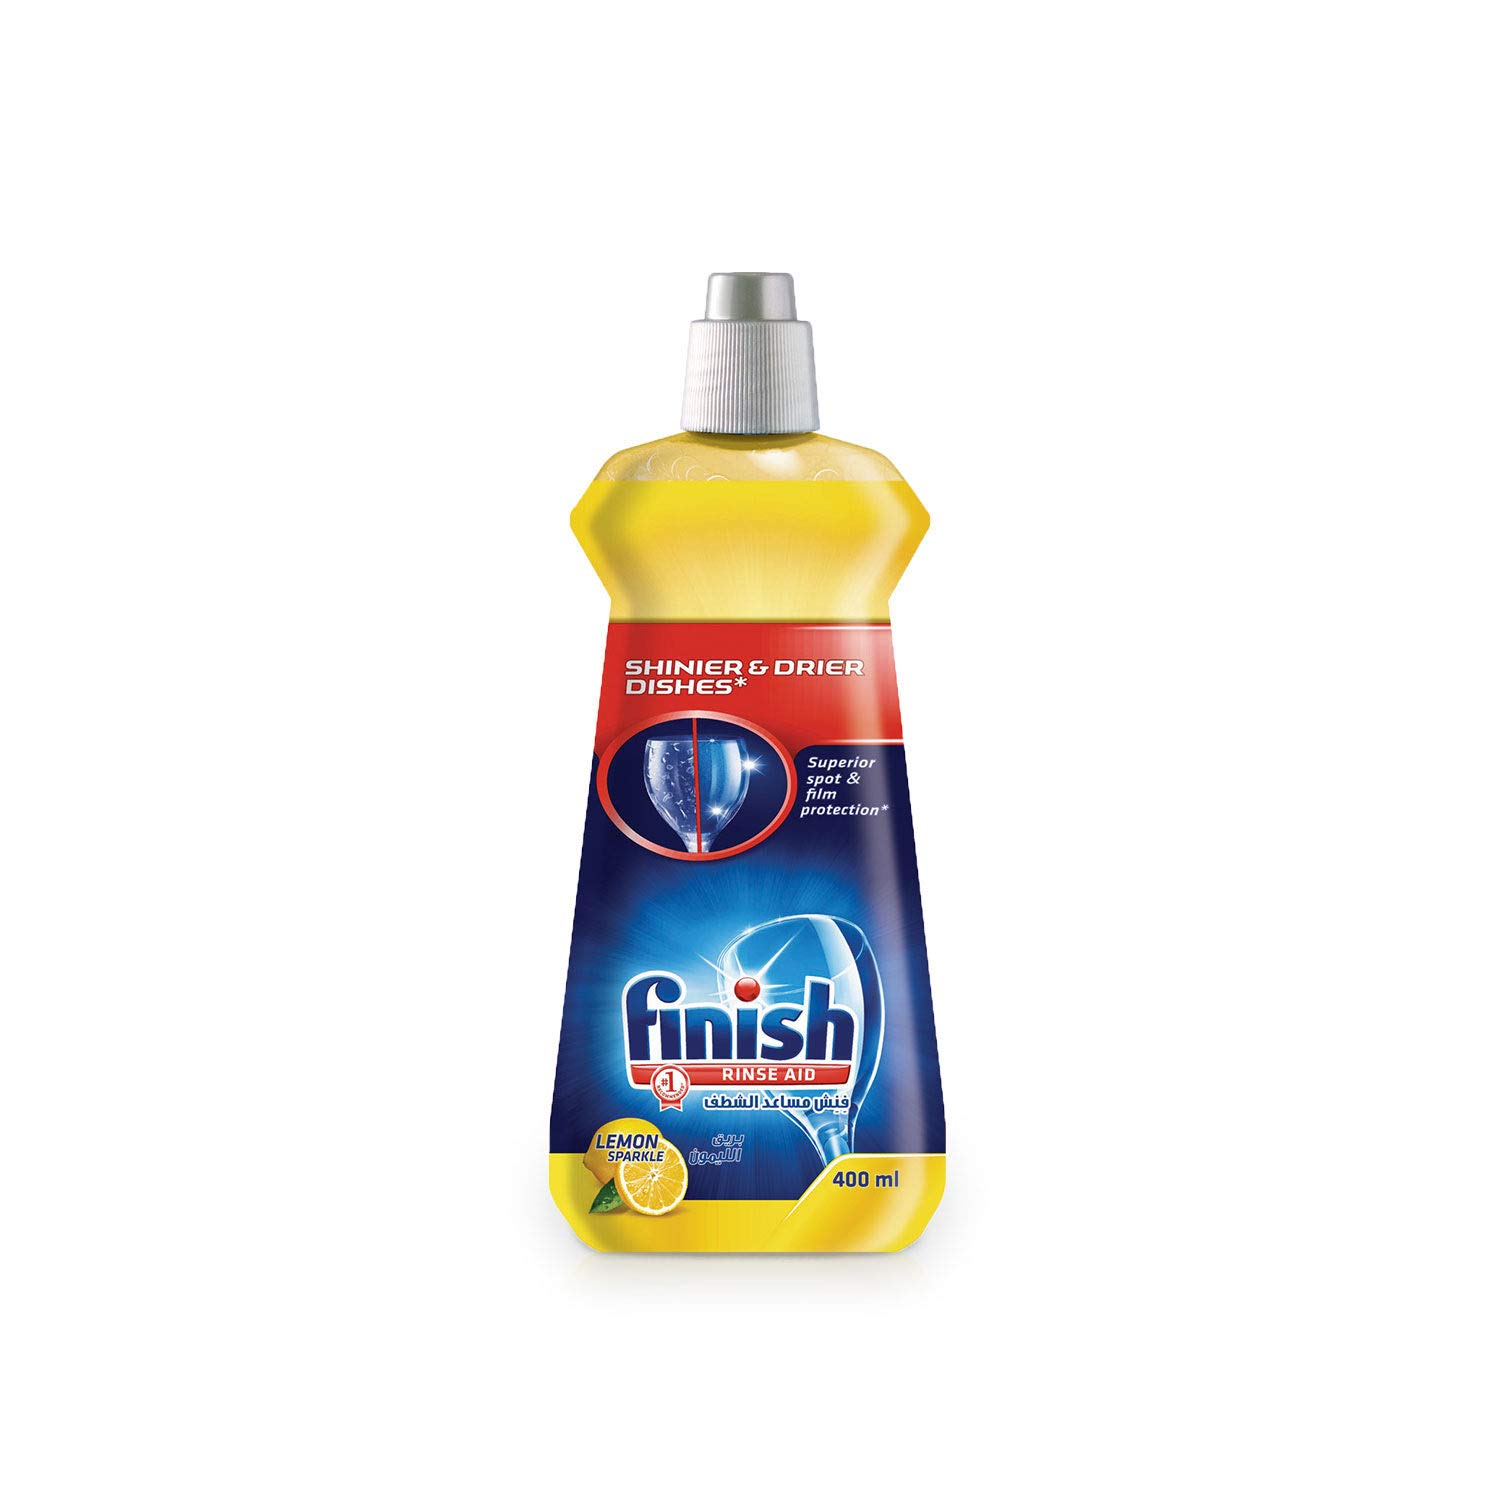 Finish Rinse Aid Shinier and drier dishes, Lemon Sparkle 400 ml (Pack of 6)